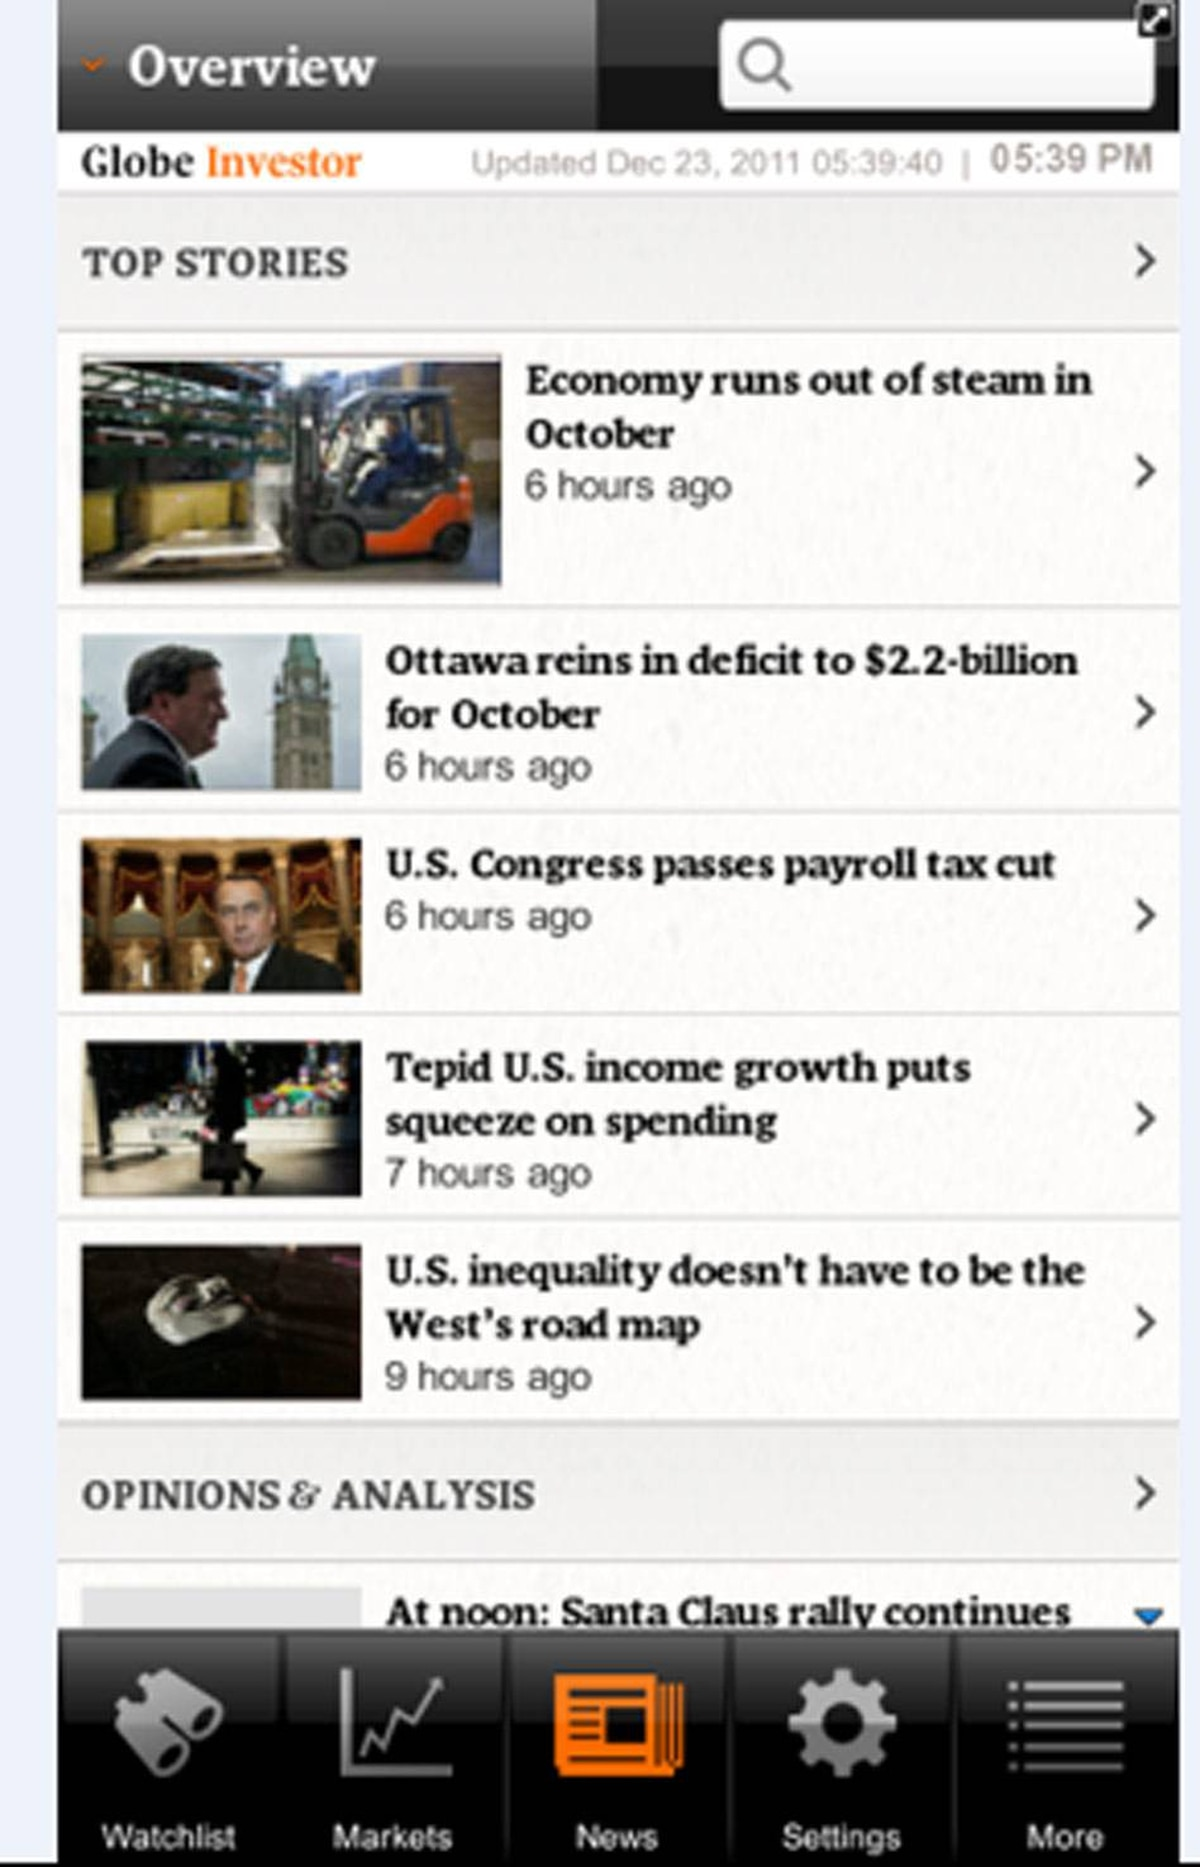 The app gives users award-winning, world-class editorial content from the Globe about the economy, business and investing. The app also features a live suggest function to make searches quick and easy.